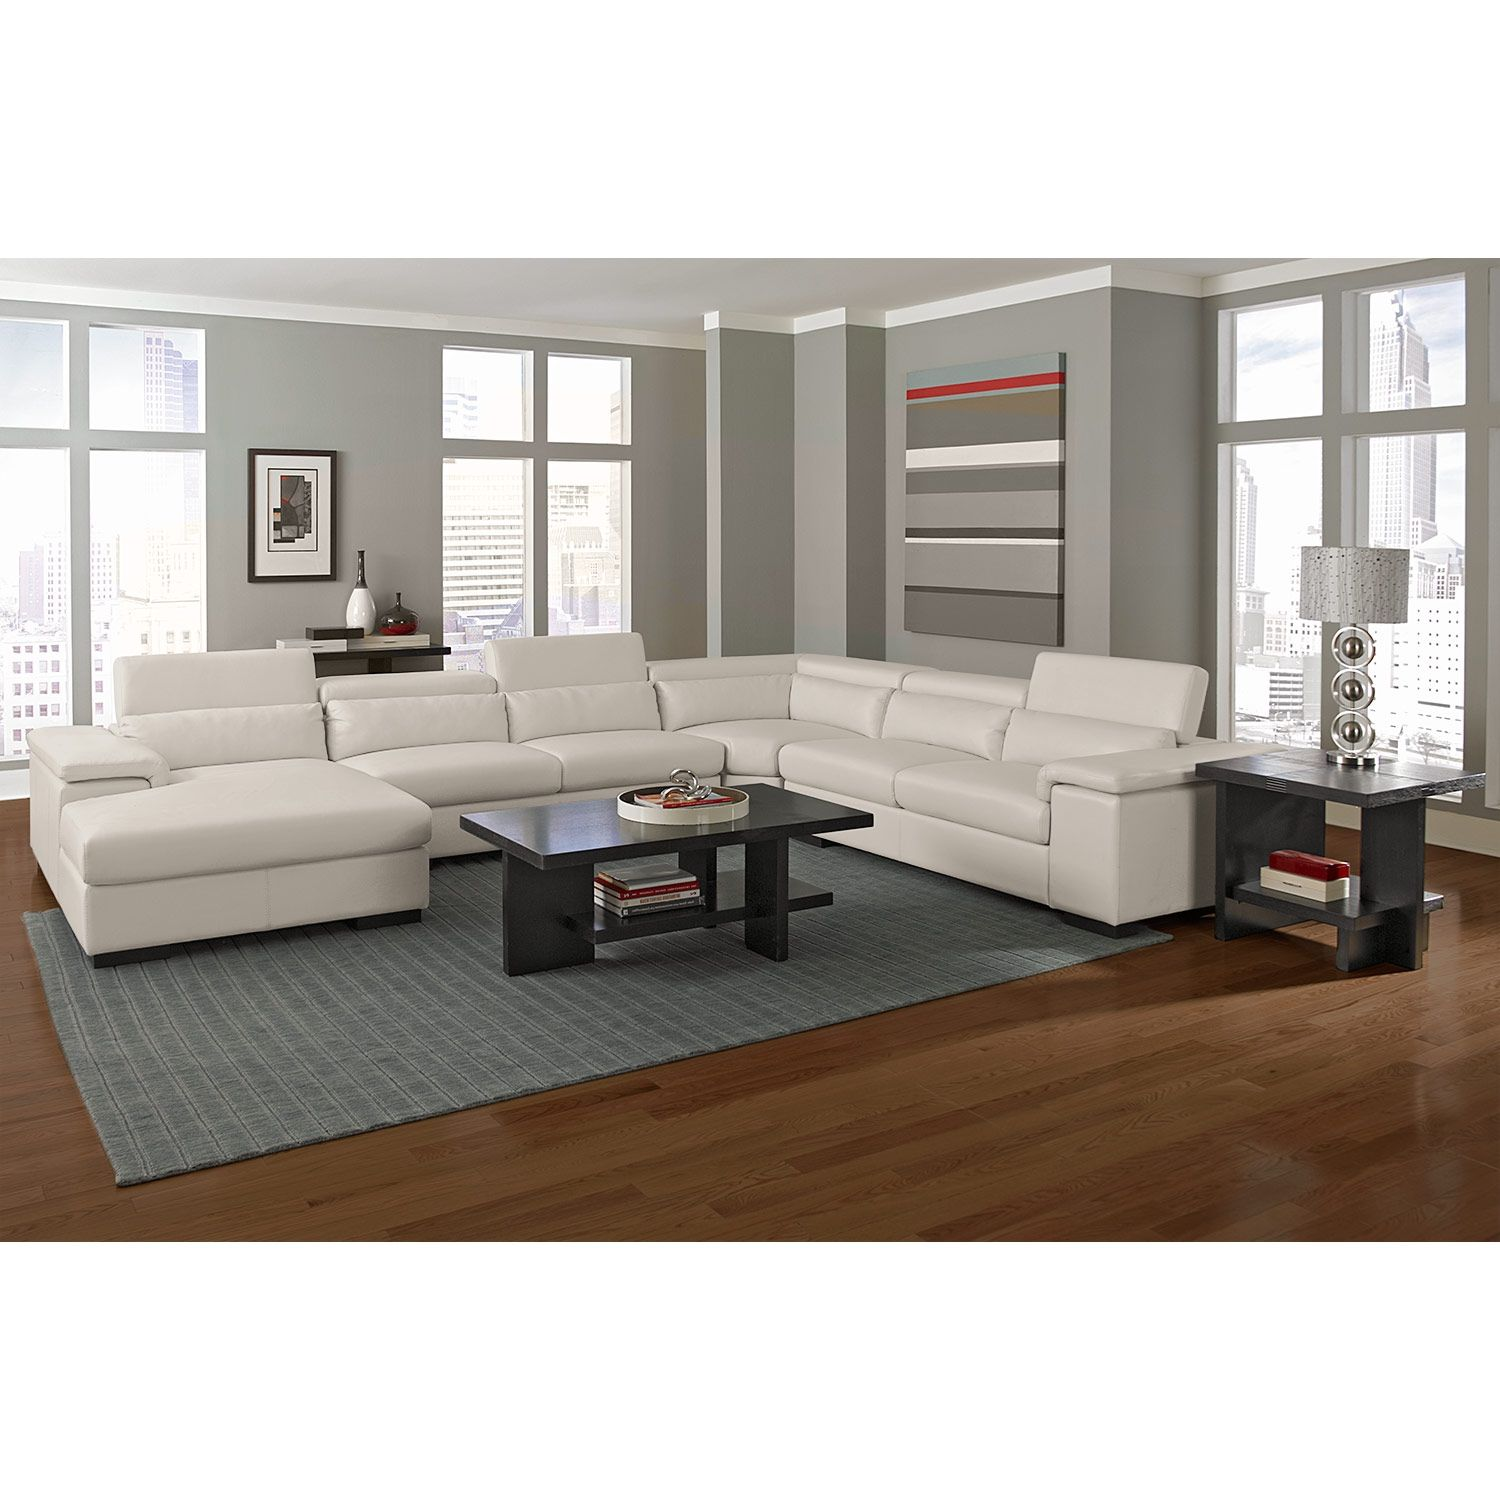 American Signature Furniture Ventana Leather 4 Pc Sectional